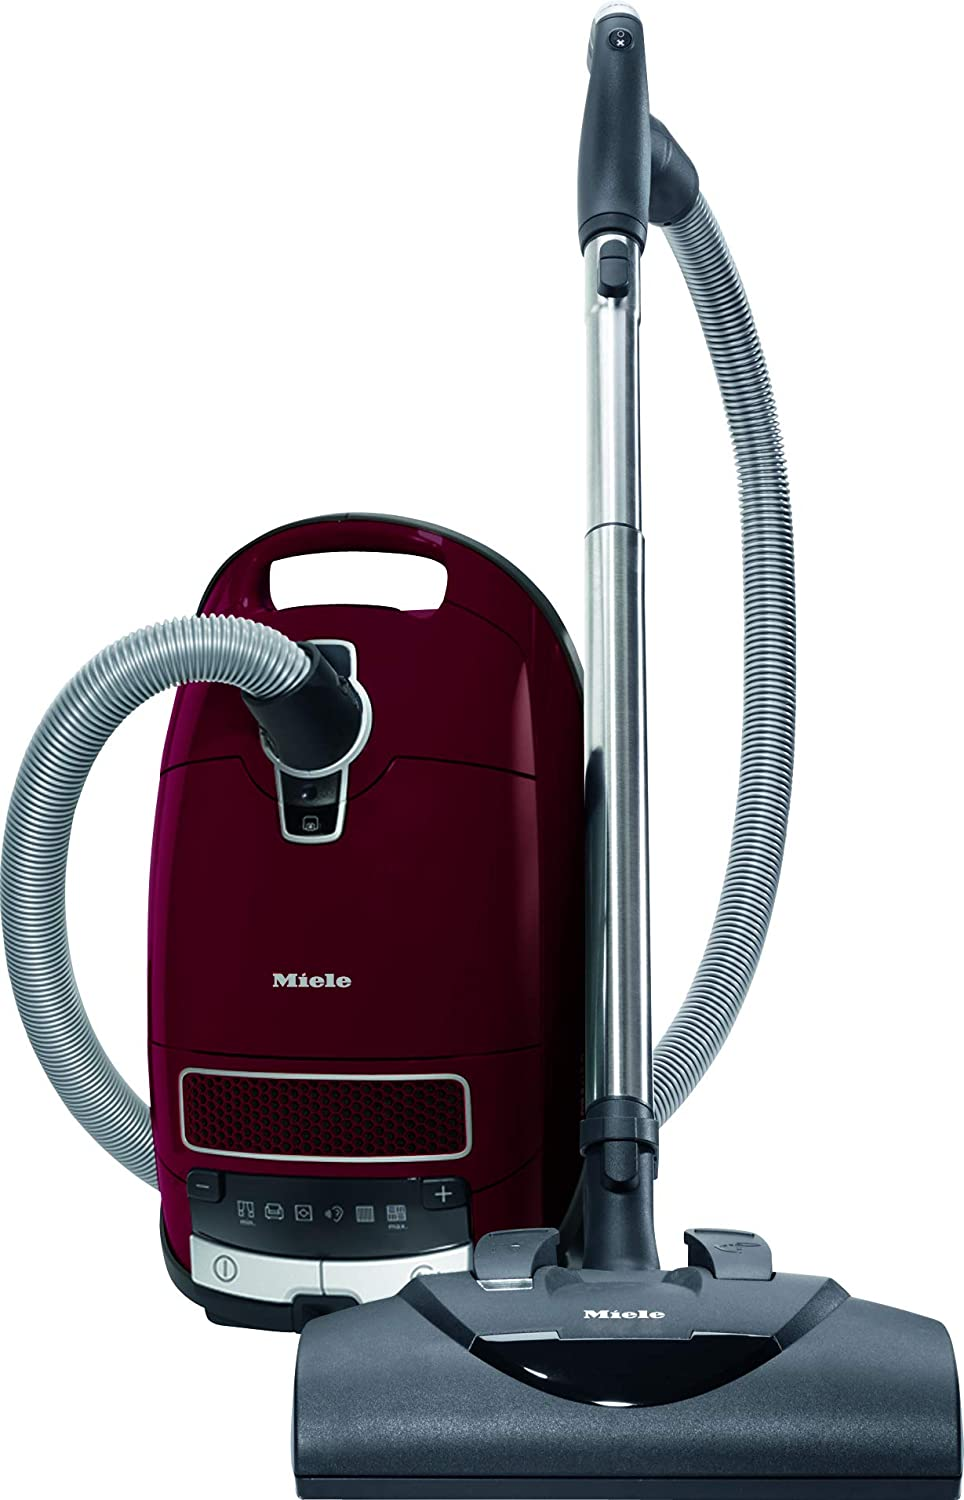 Miele Las Vegas Mall Complete C3 Vacuum for Cheap Soft Tayberry Red Carpet